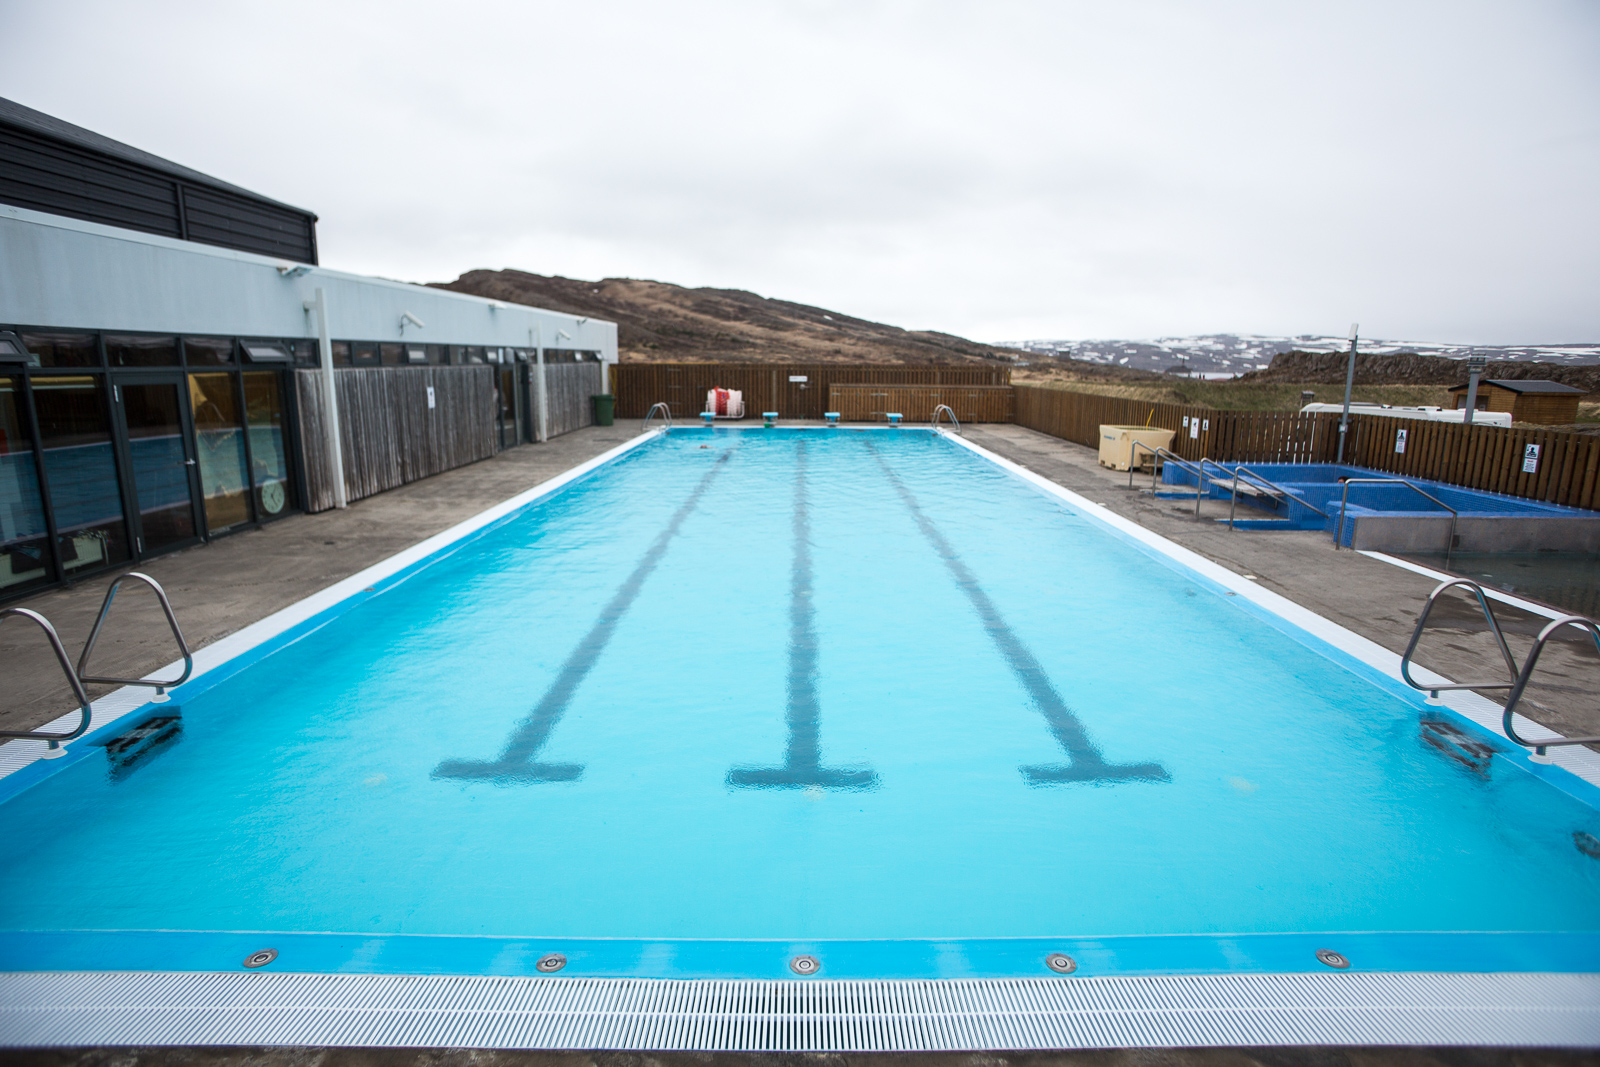 Swimming pools in iceland the formula for water the - Volume of a swimming pool formula ...